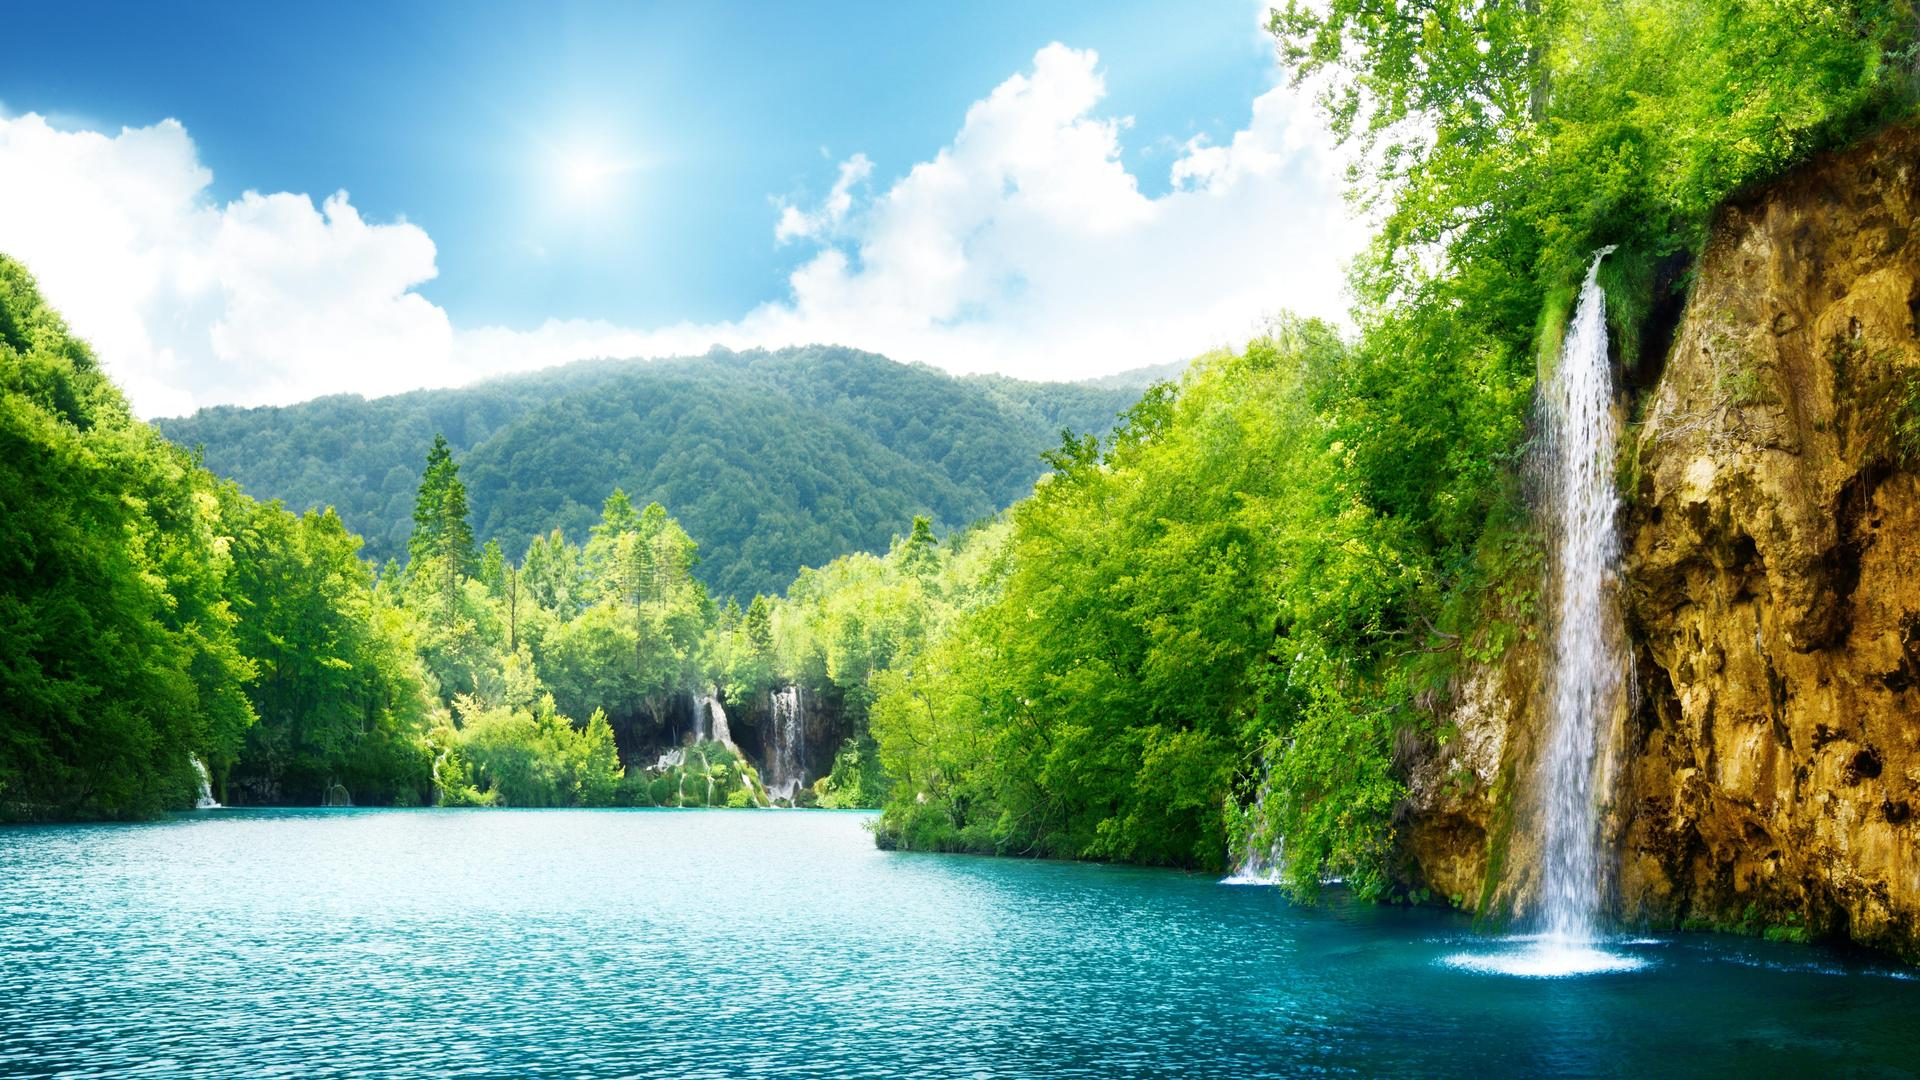 Summer Sunny Day And Wonderful Waterfall In The Nature